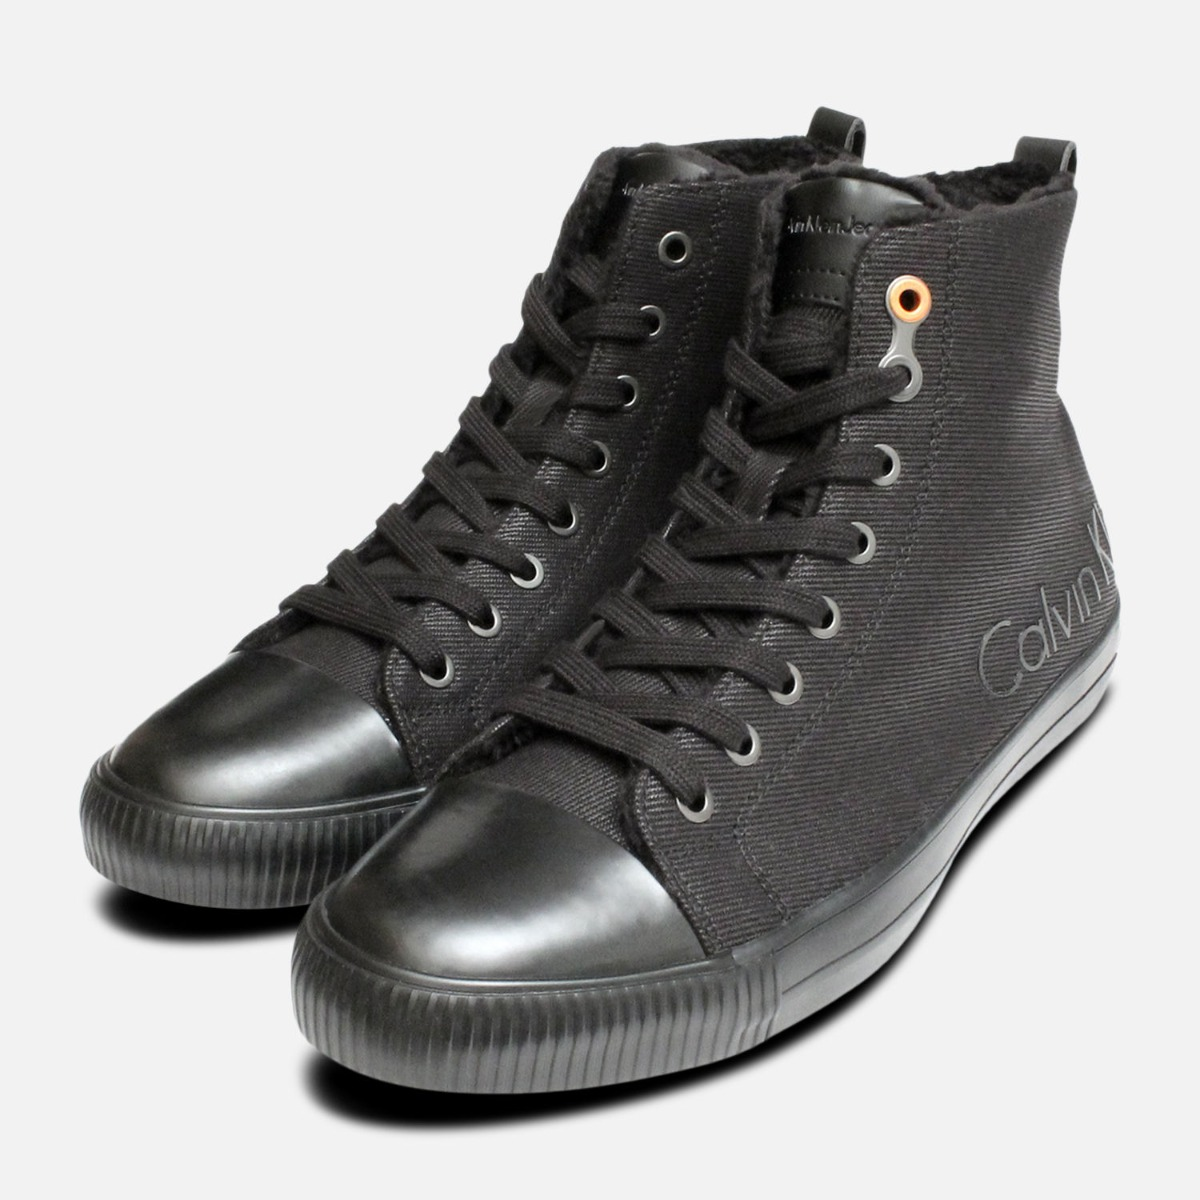 Calvin Klein Warm Lined High Tops in